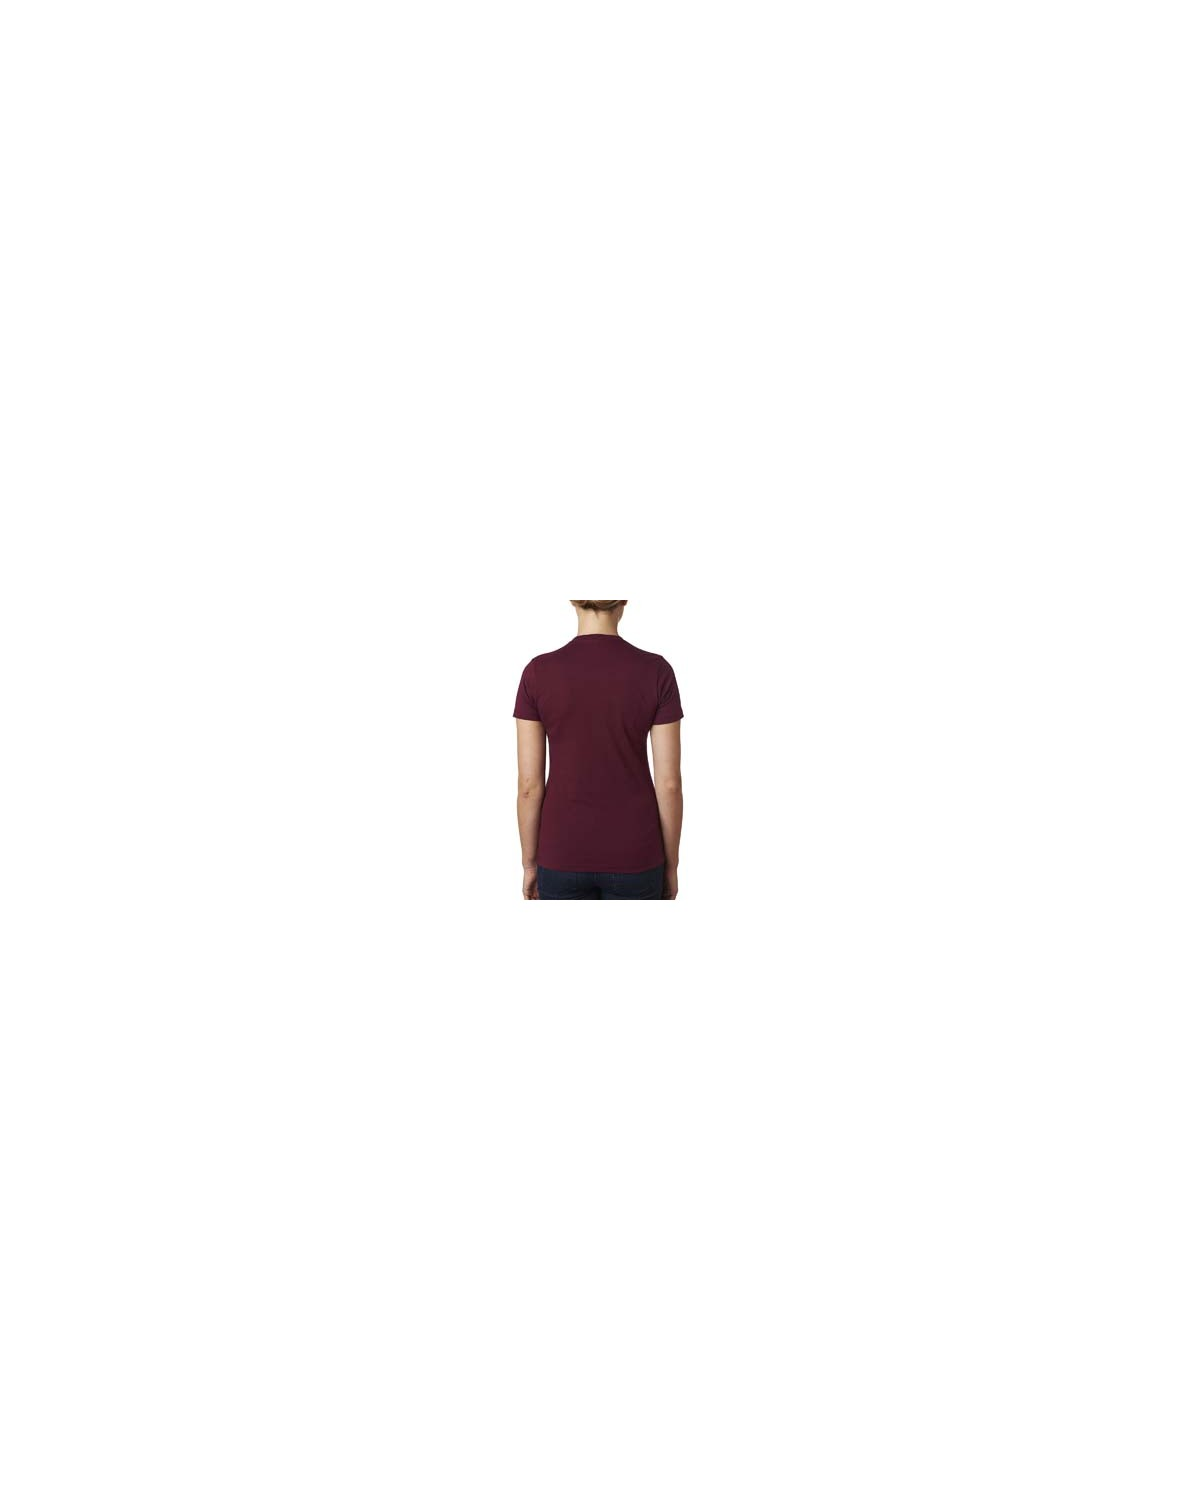 N3900 Next Level MAROON